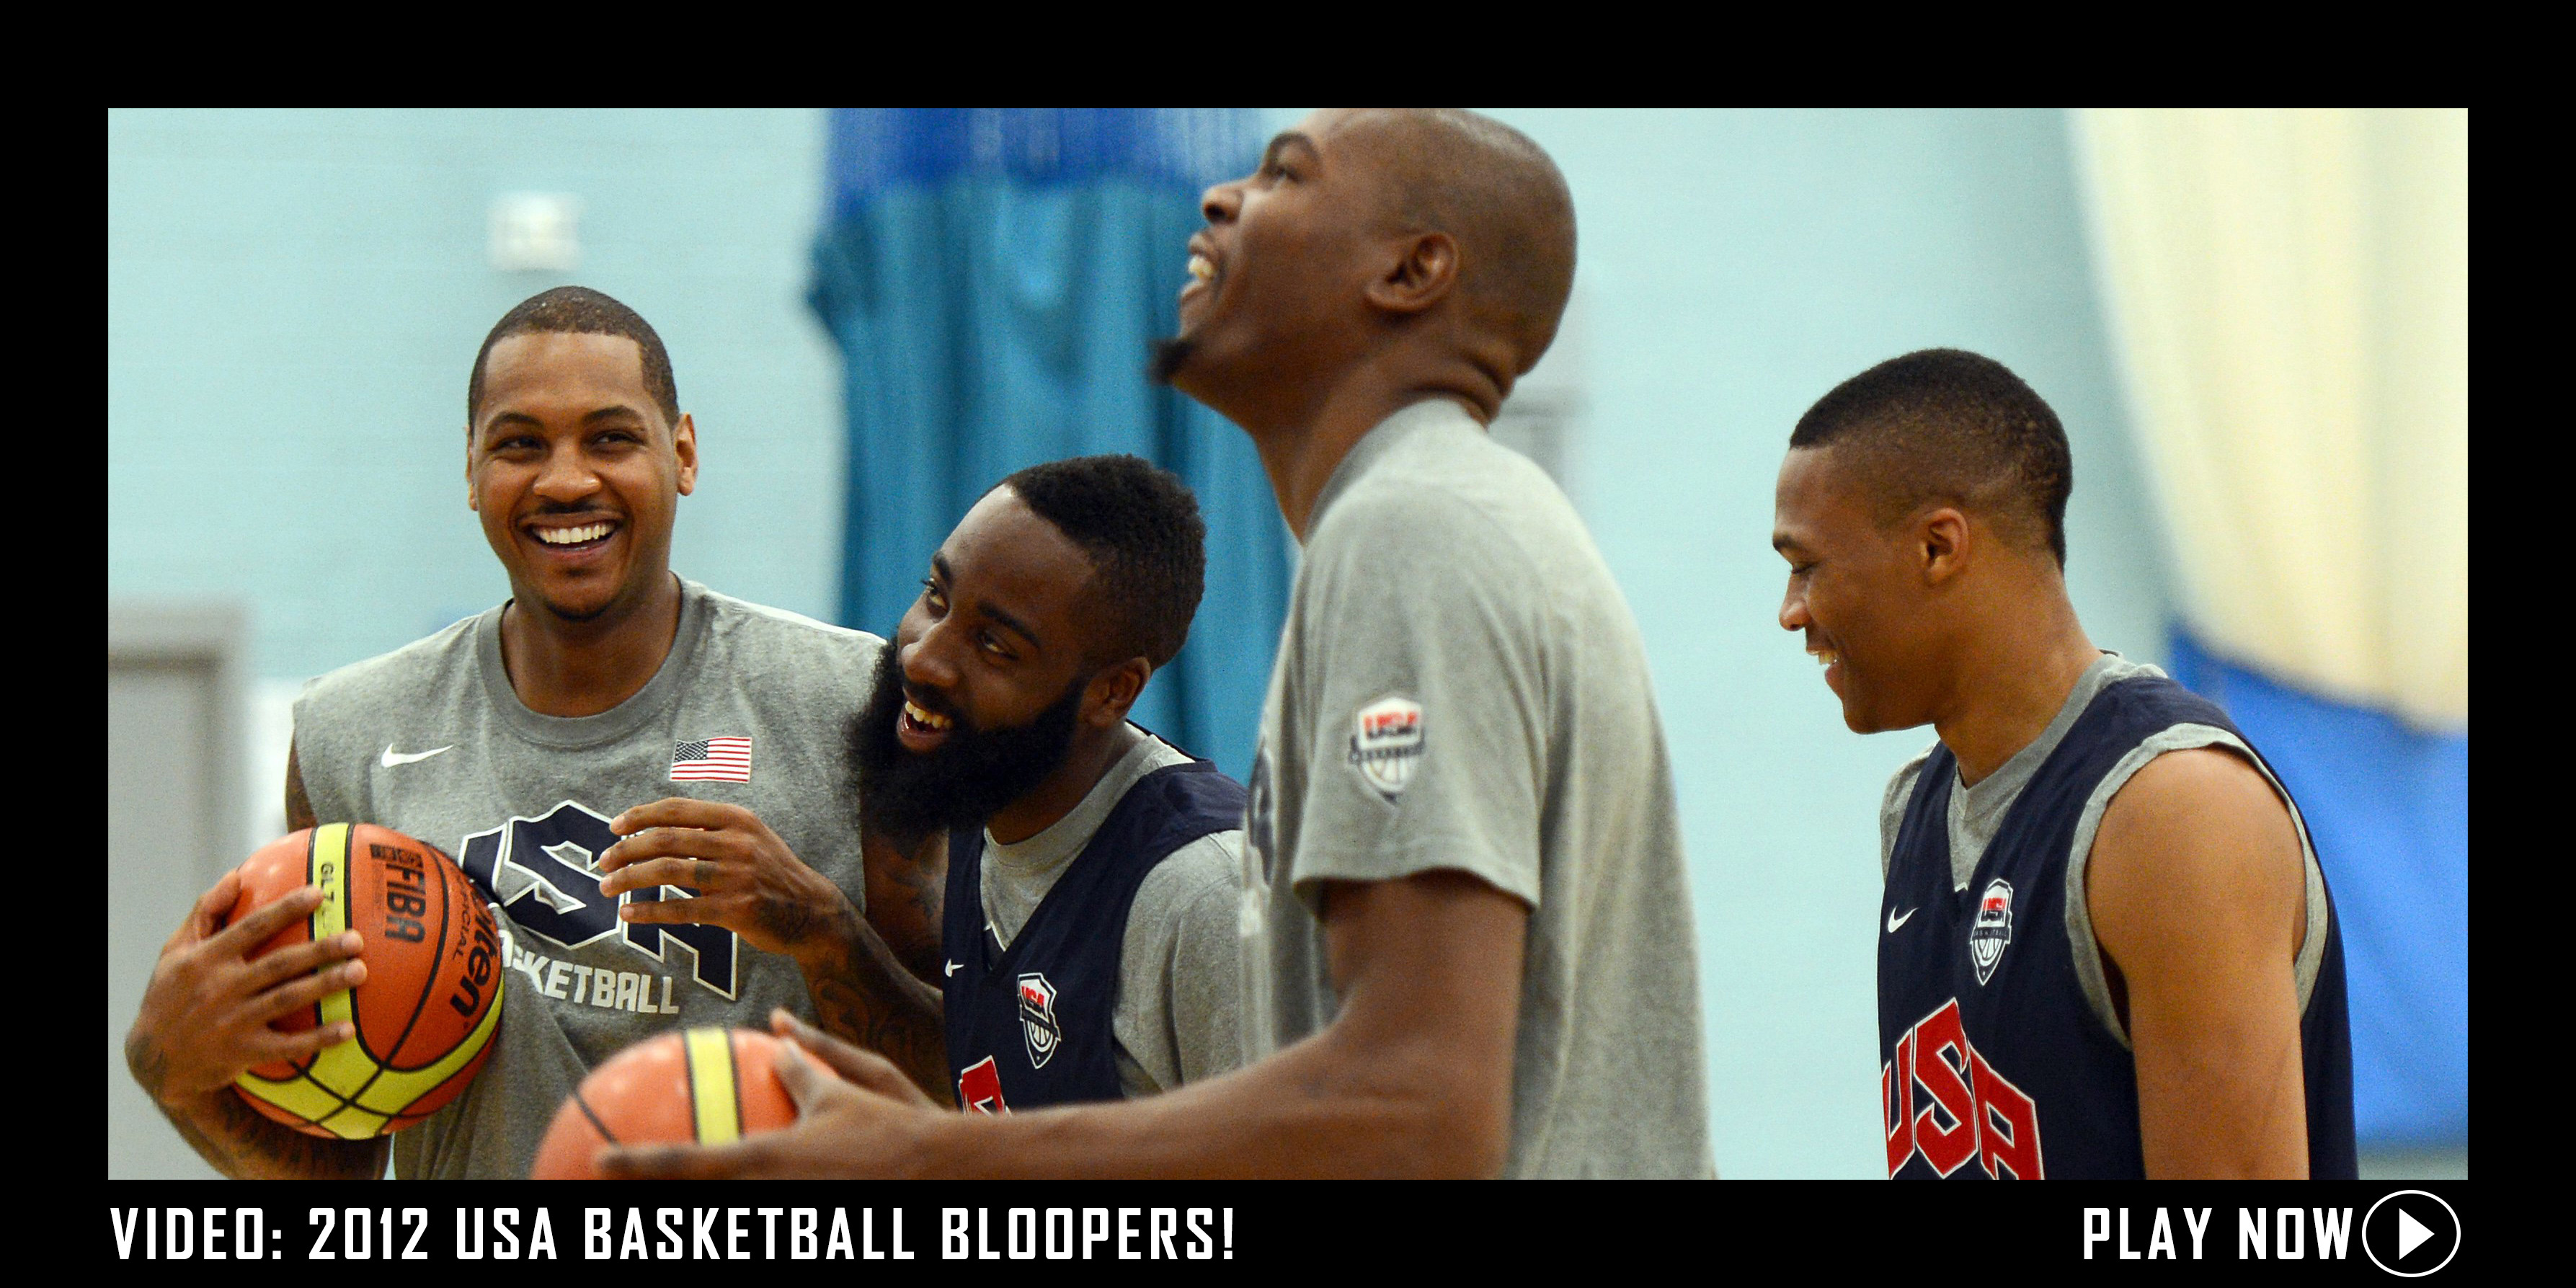 2012 USA Basketball Bloopers.